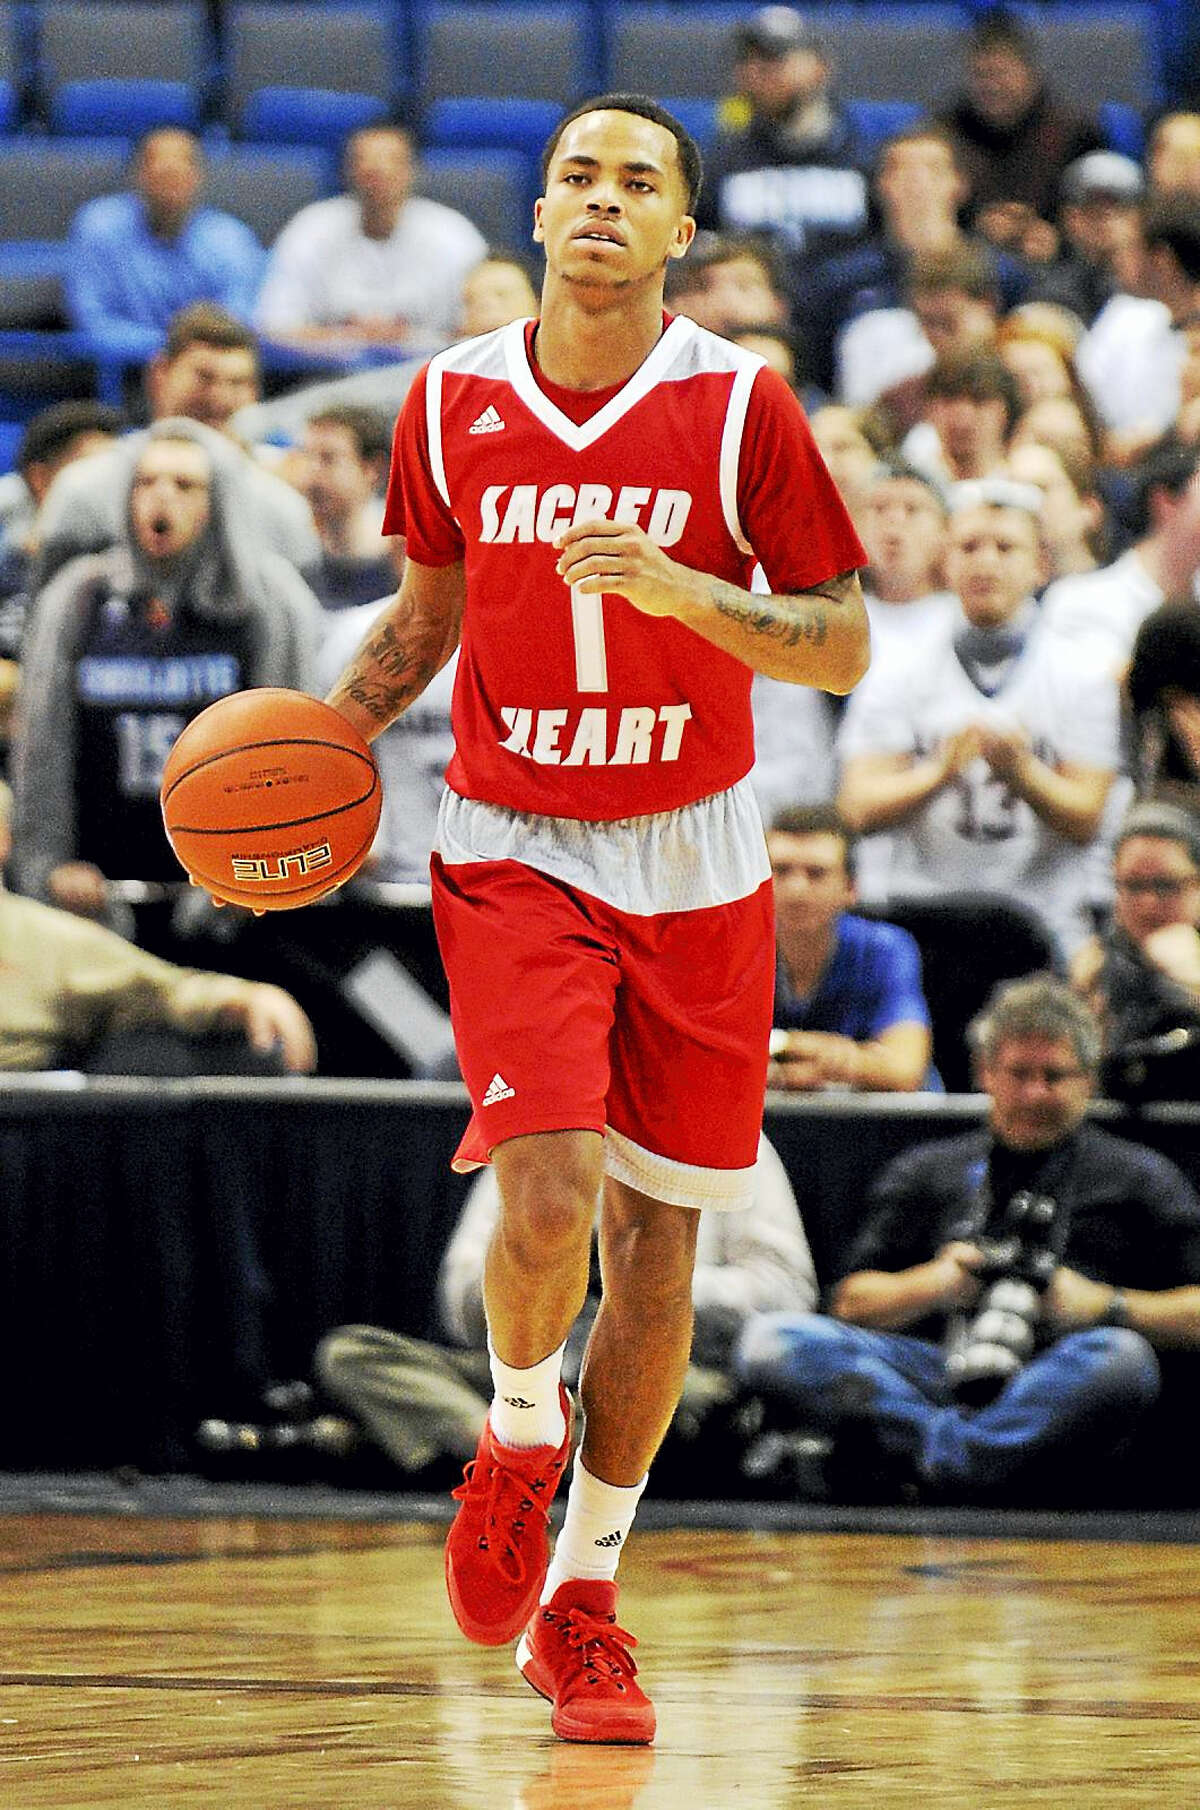 Sacred Heart's Cane Broome (1) dribbles during Connecticut's 82-49 victory over Sacred Heart in an NCAA college basketball game in Hartford, Conn., on Wednesday, Dec. 2, 2015. (AP Photo/Fred Beckham)